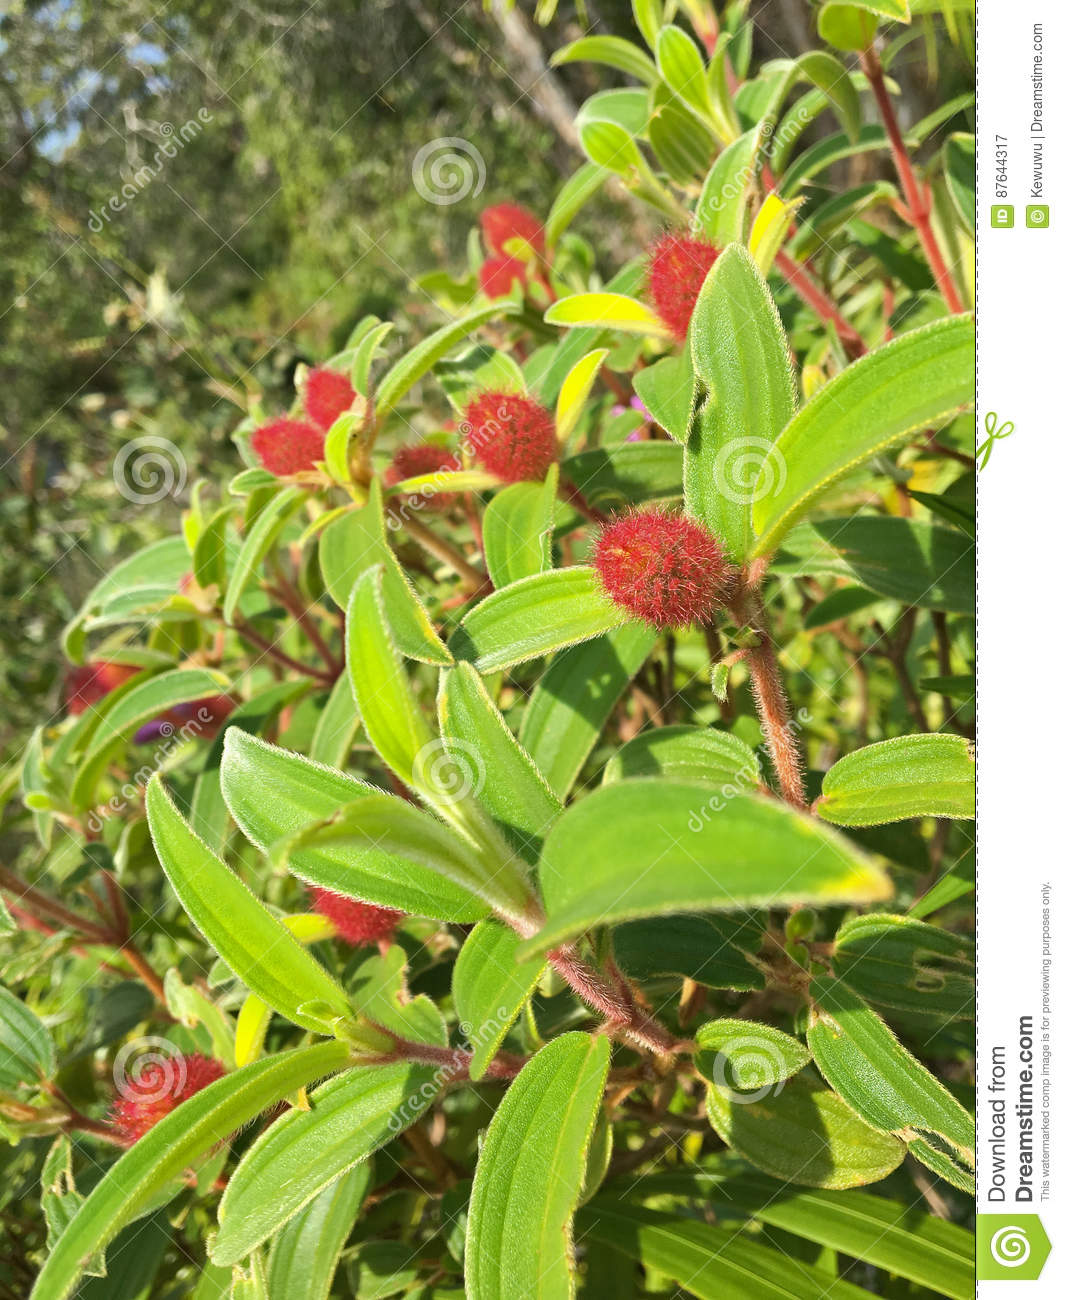 Incredible Red Furry Hairy Flower Buds Of Indian Rhododendron Malabar Interior Design Ideas Philsoteloinfo